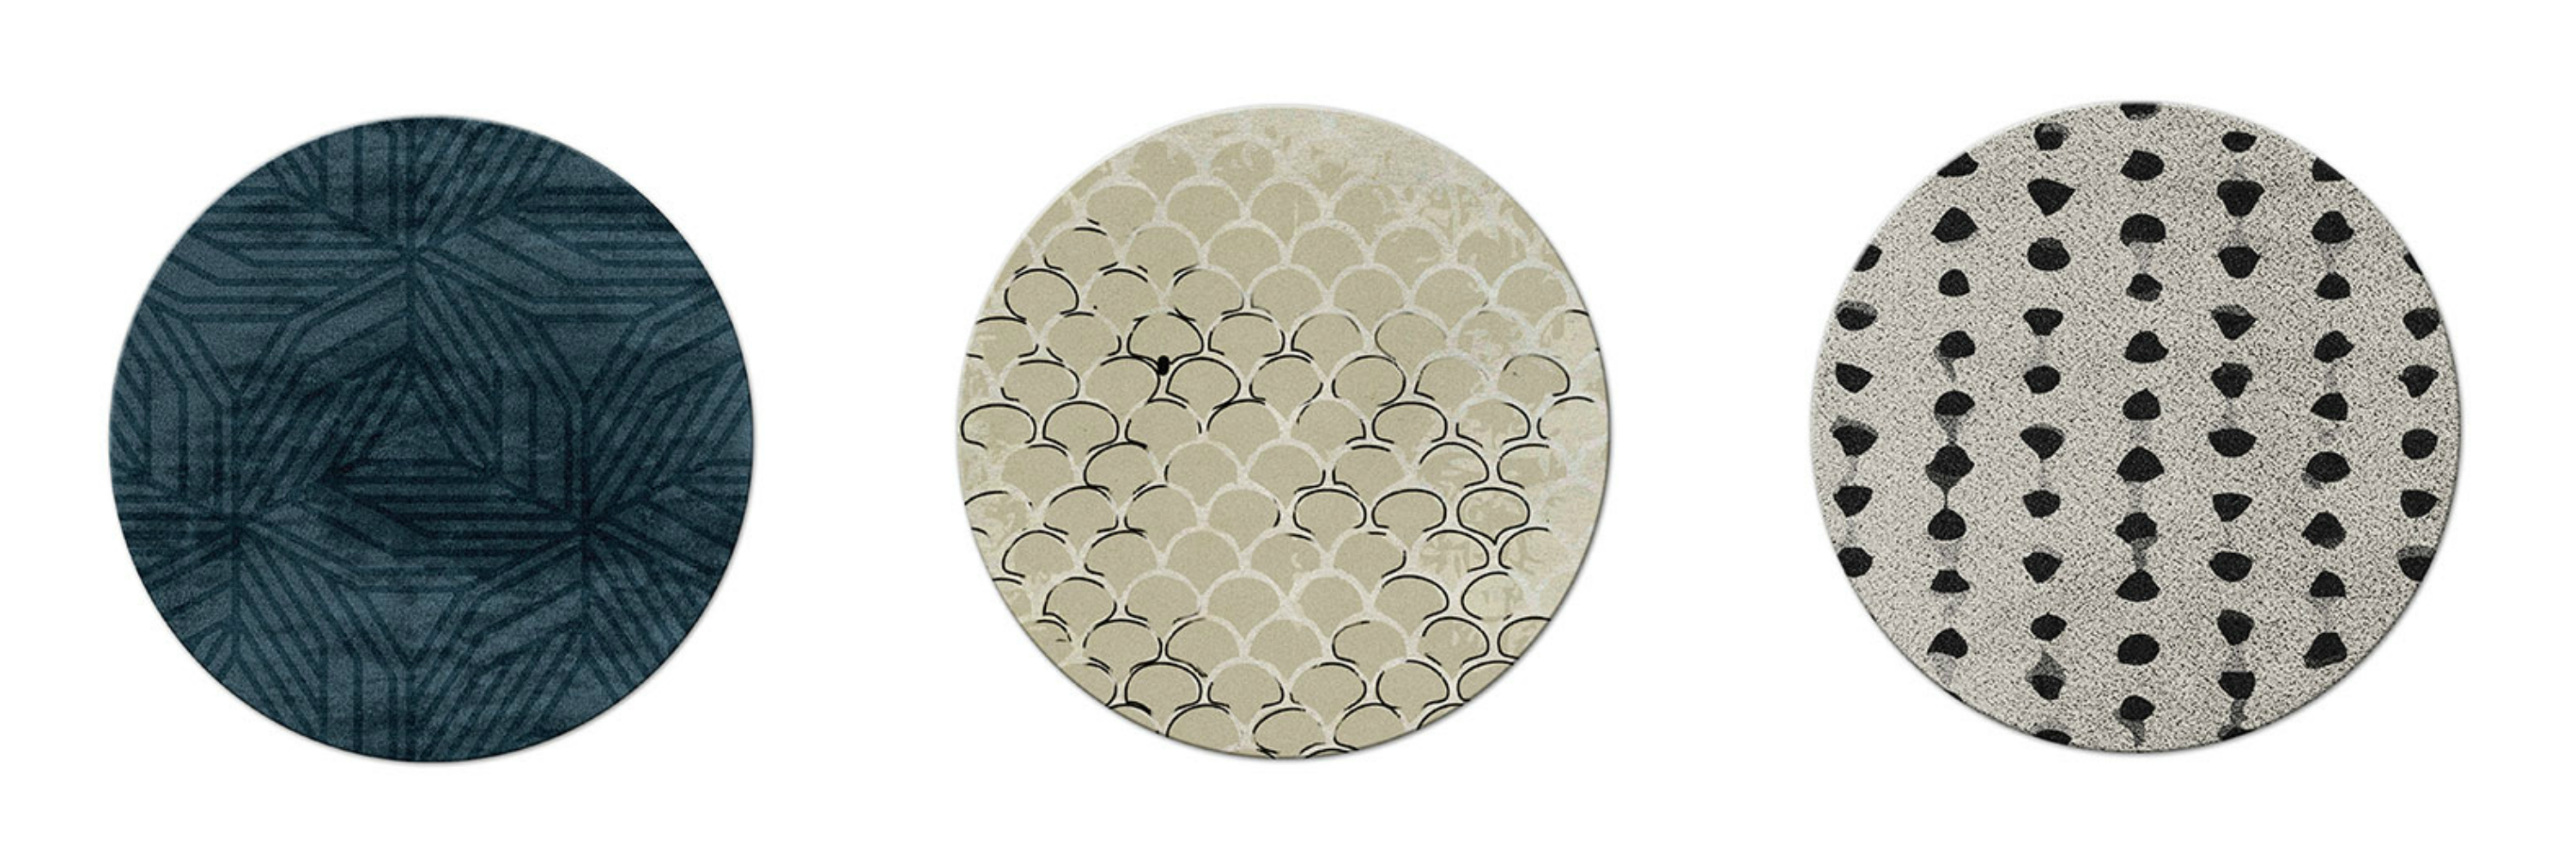 round rug 5 Incredible Round Rugs to Create A Dining Room You Will Adore minigaleria